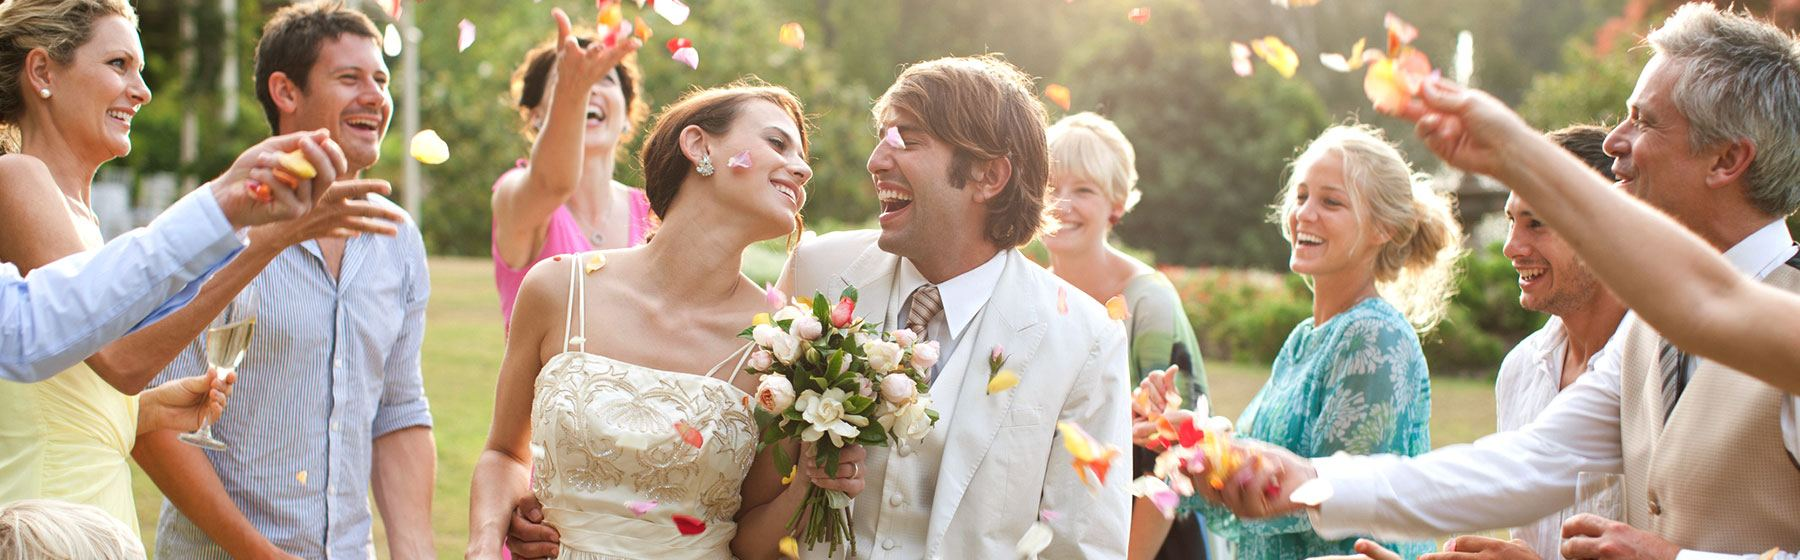 Contact Wedding Event Manager at Andrews By The Sea